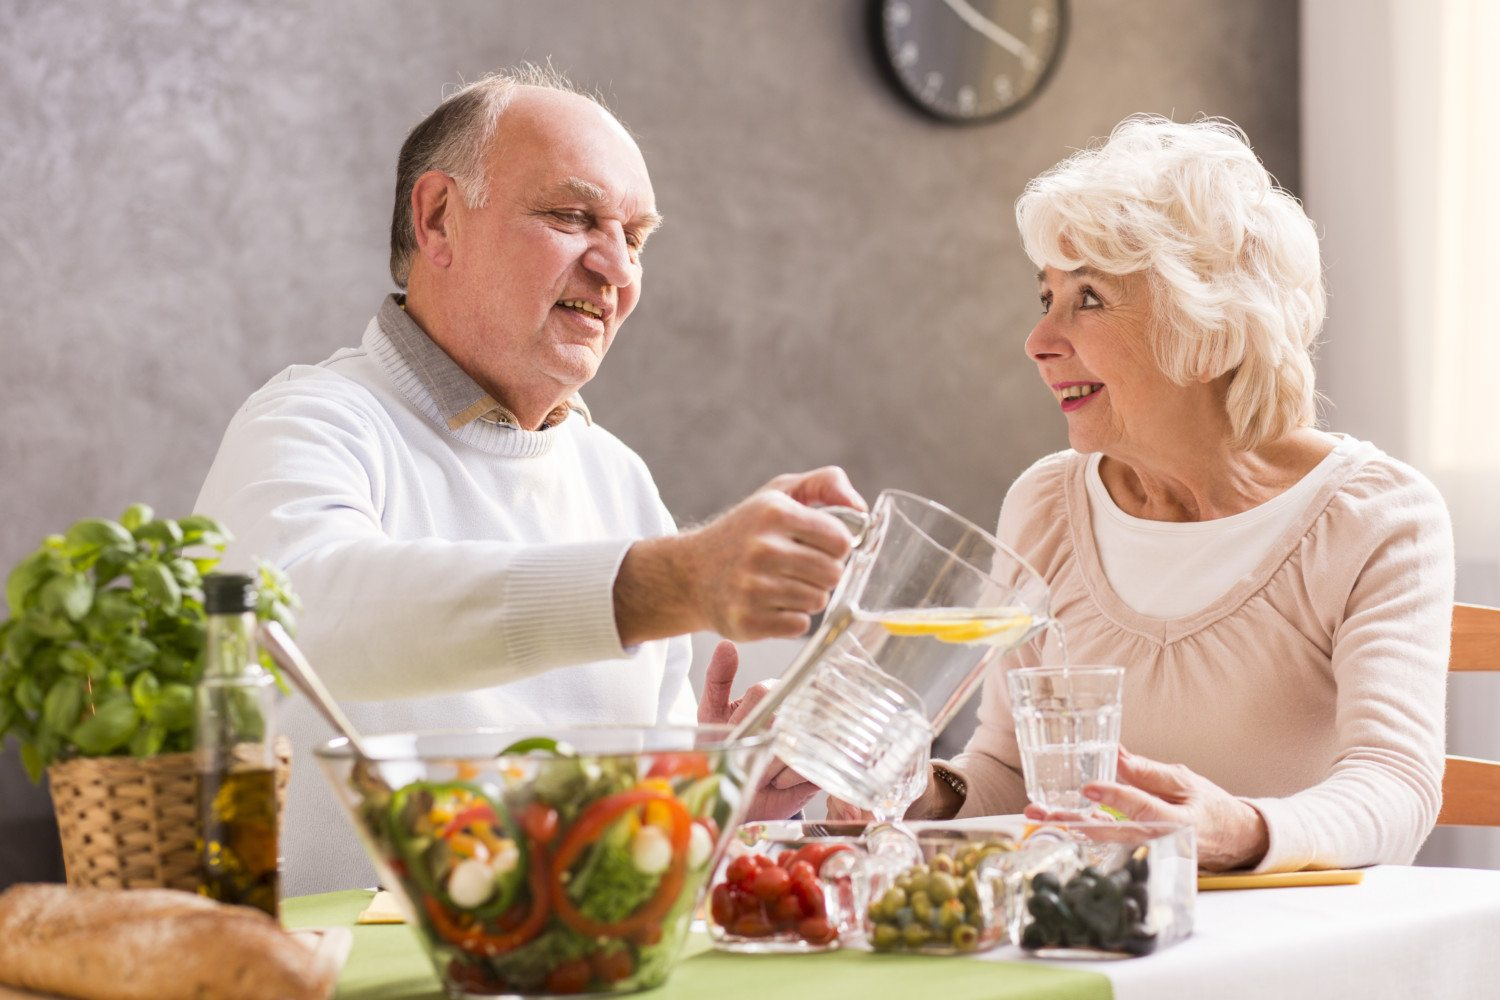 Most Reliable Seniors Online Dating Site In Canada